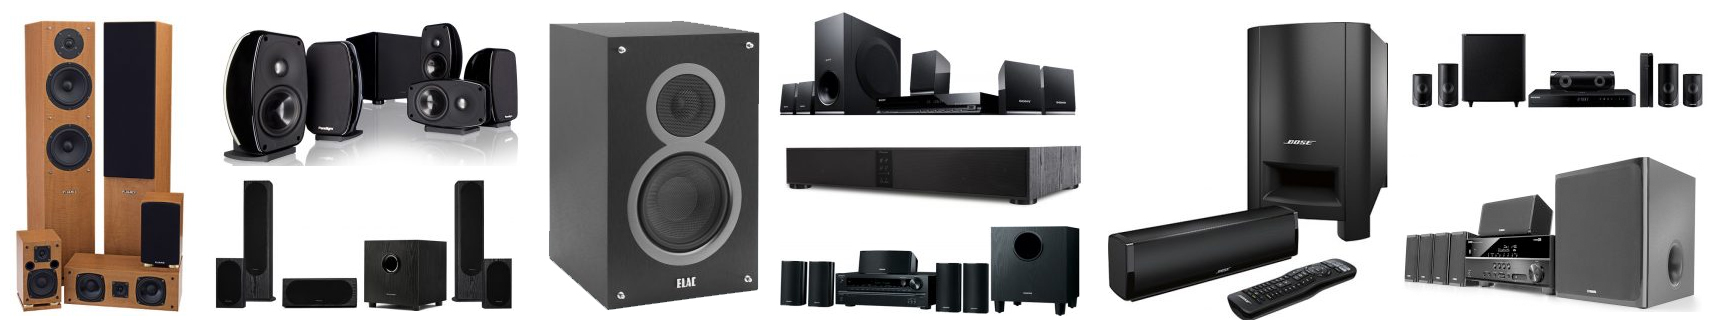 The Top 10 Best Home Theater Speaker Systems - The Wire Realm